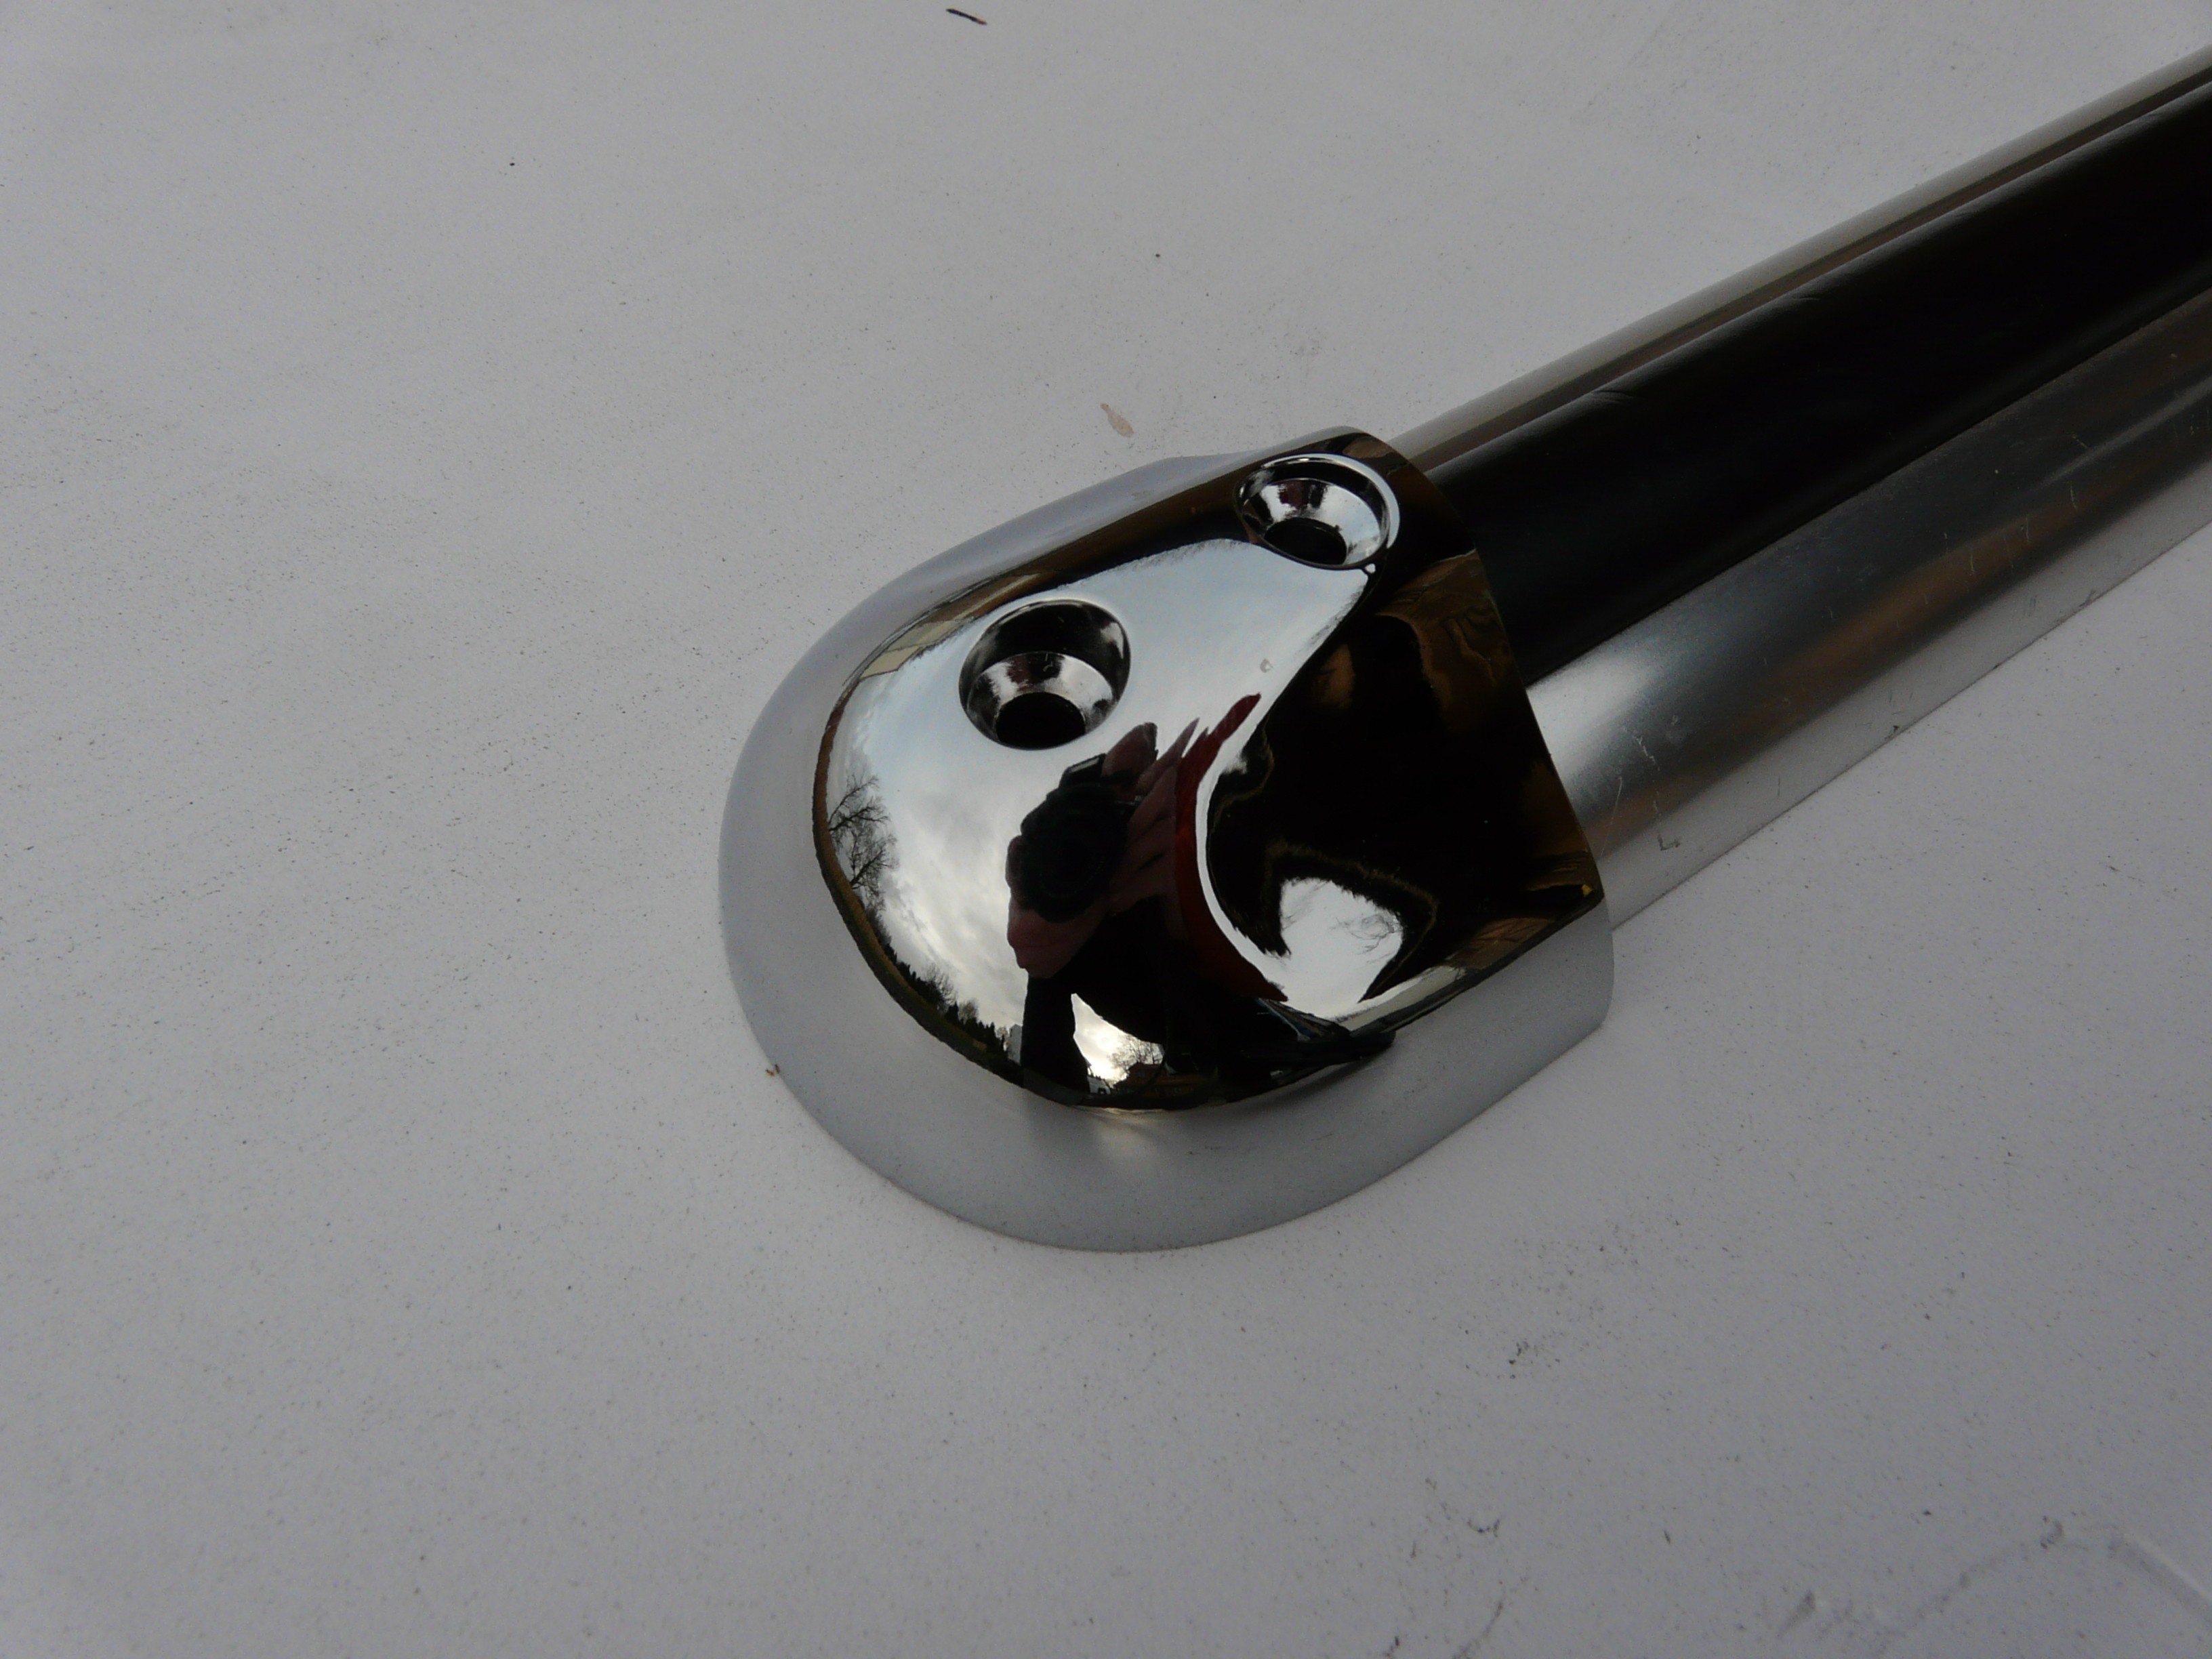 Plastic End Cap - Mirror Finish (Rub Rail)